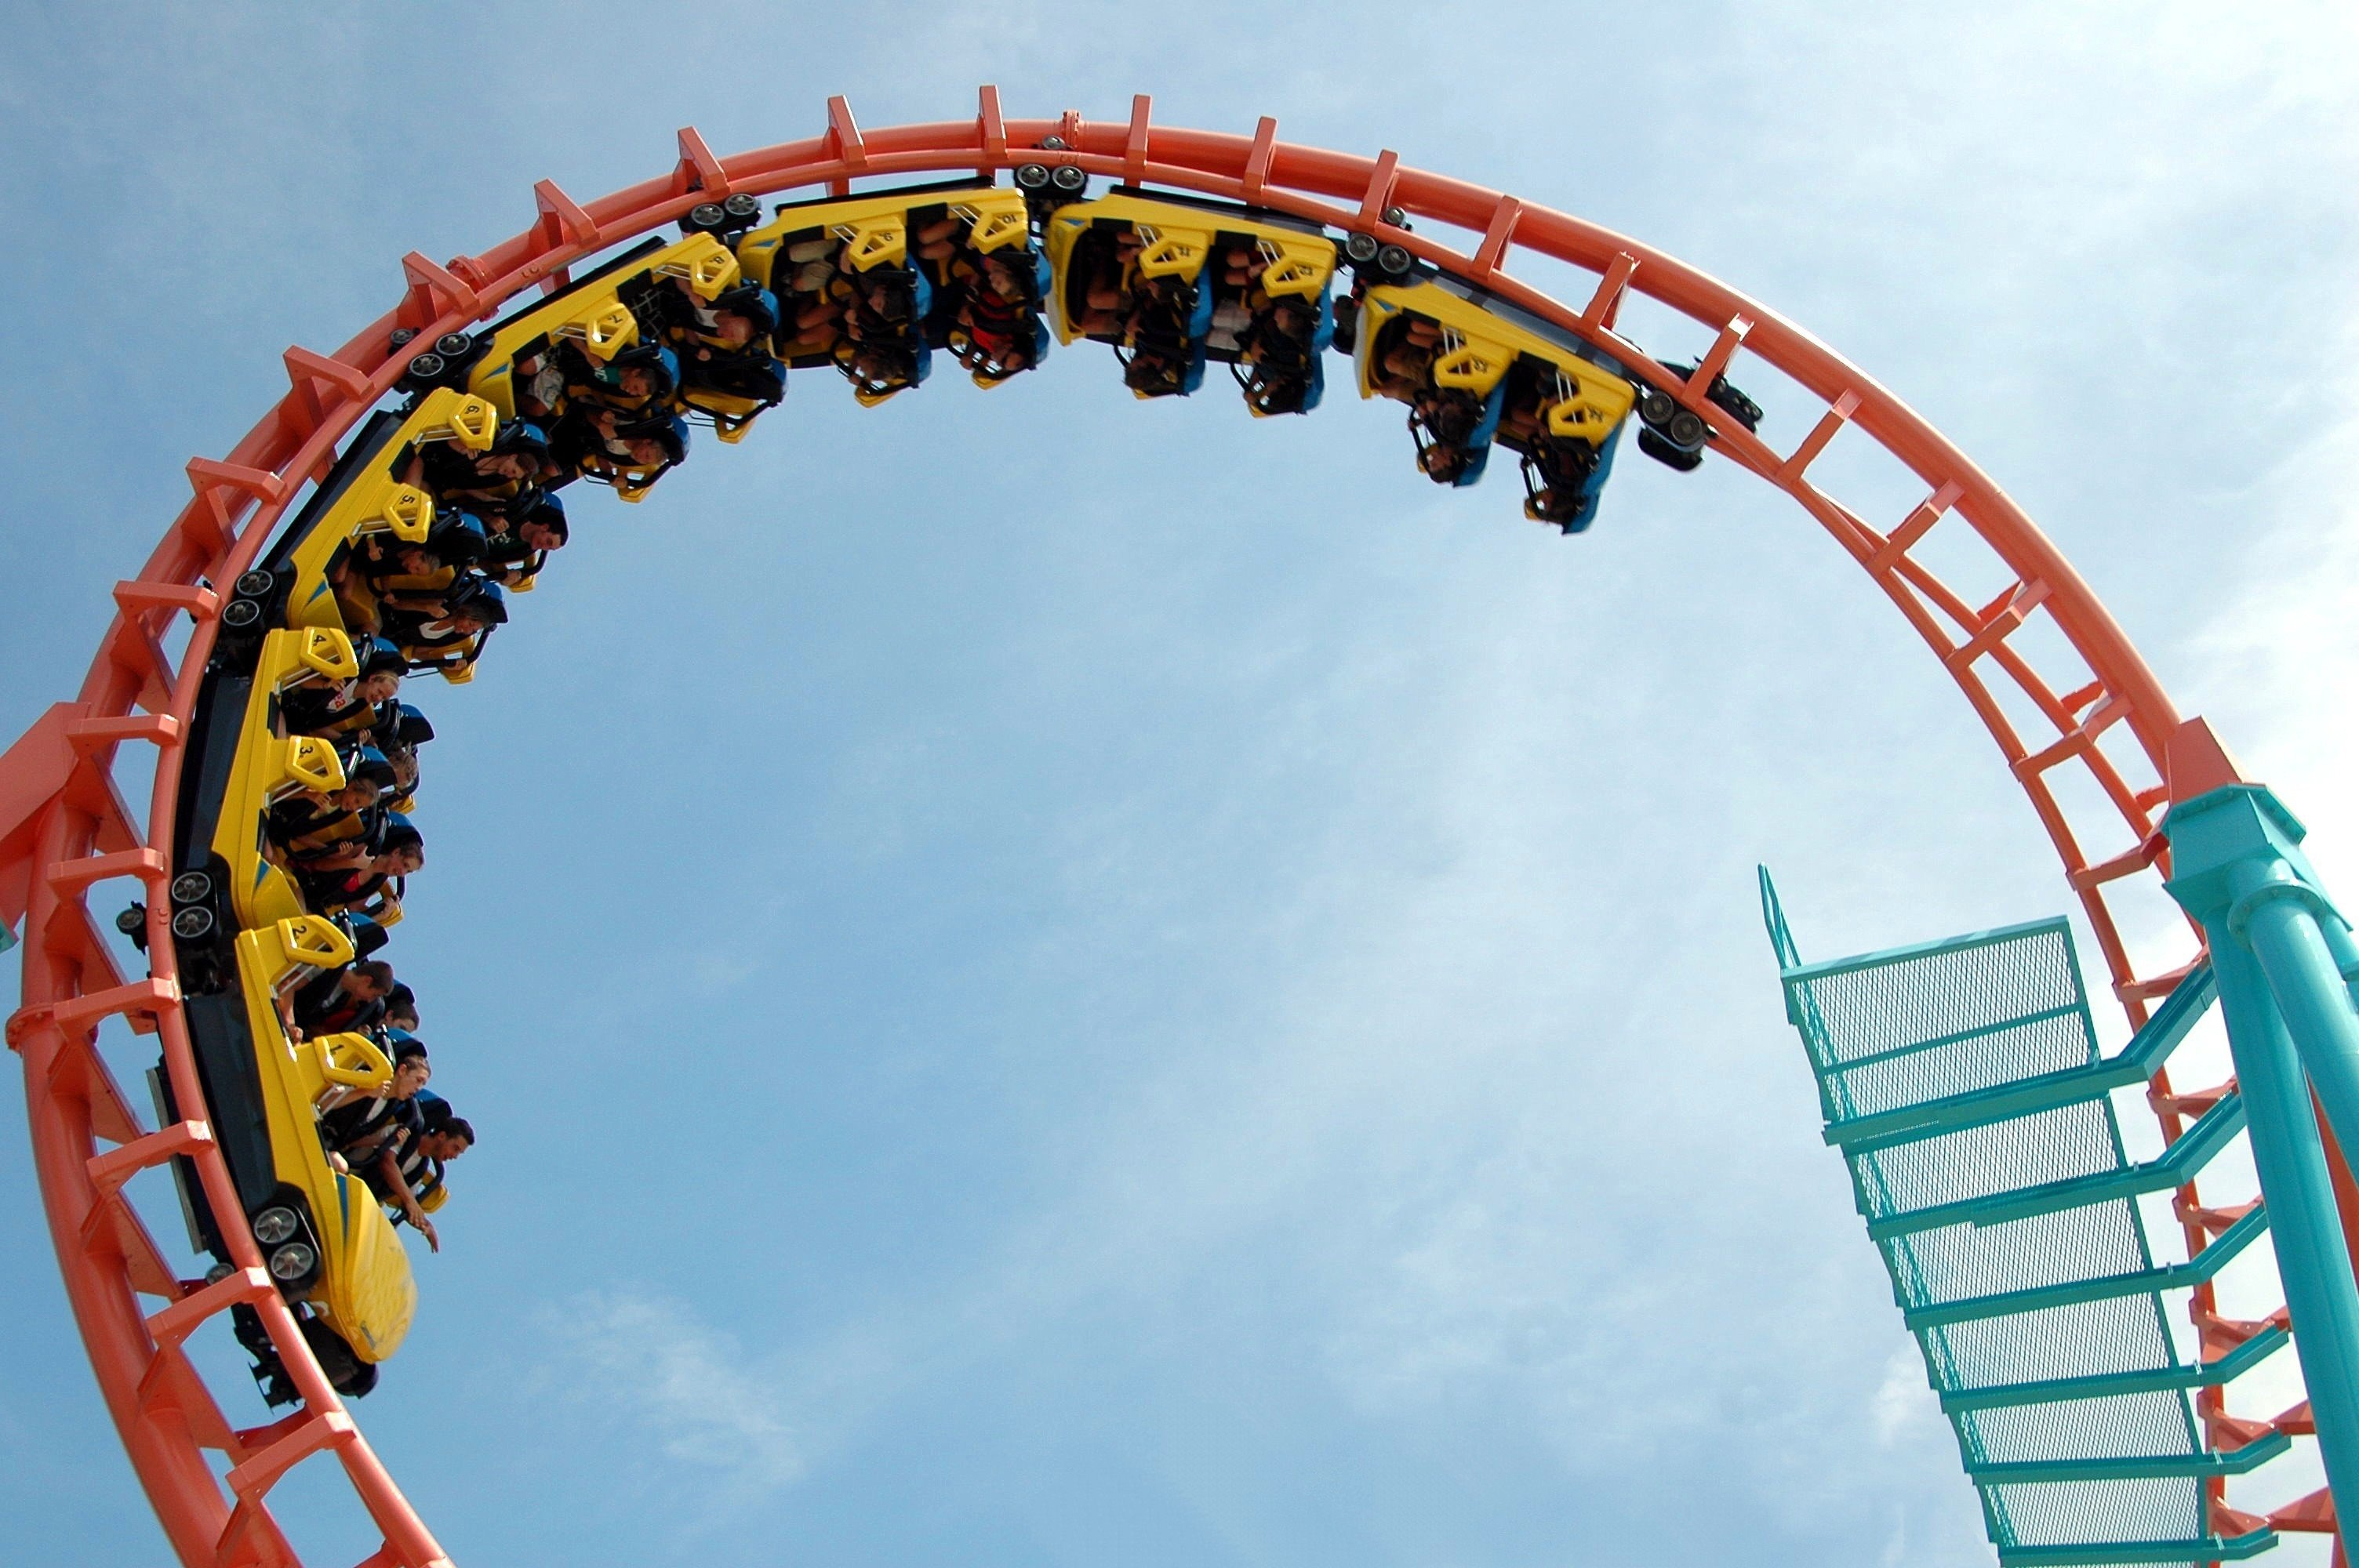 Kings dominion discount coupons - Kings Dominion Discount Coupons 48